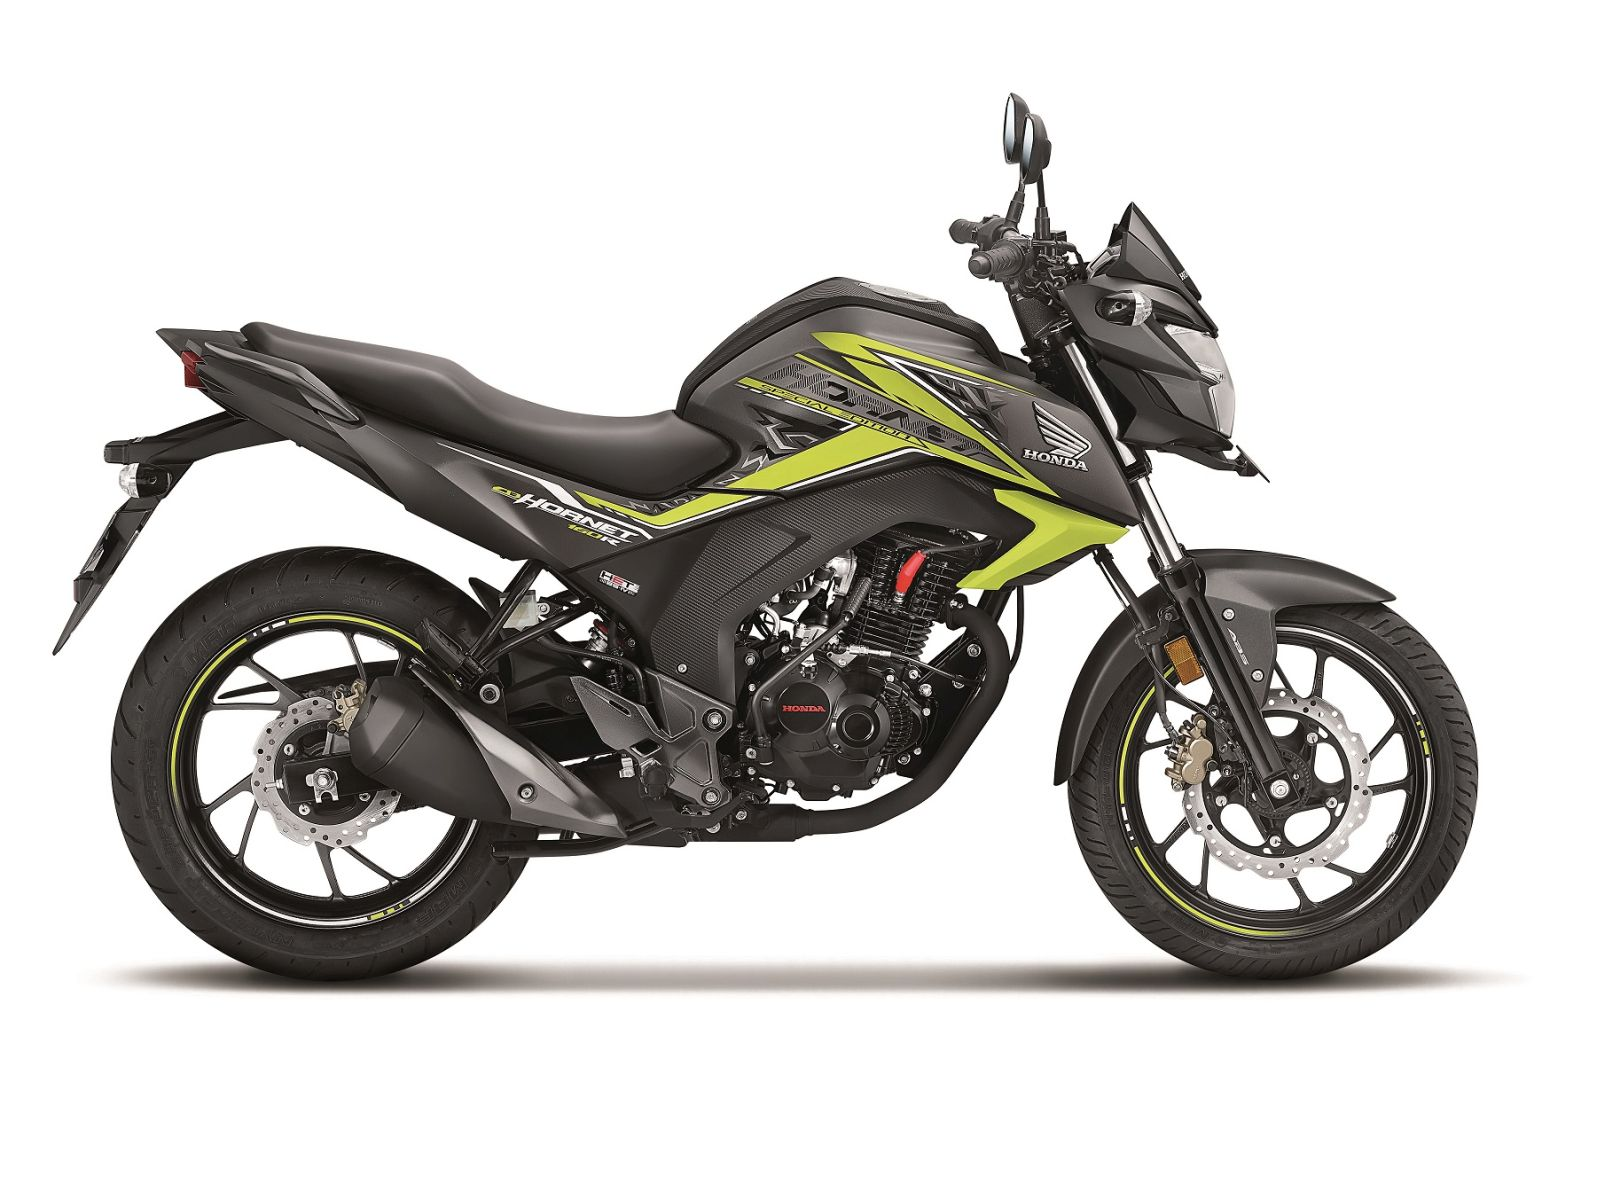 official new 2018 honda cb hornet 160r launched in india. Black Bedroom Furniture Sets. Home Design Ideas